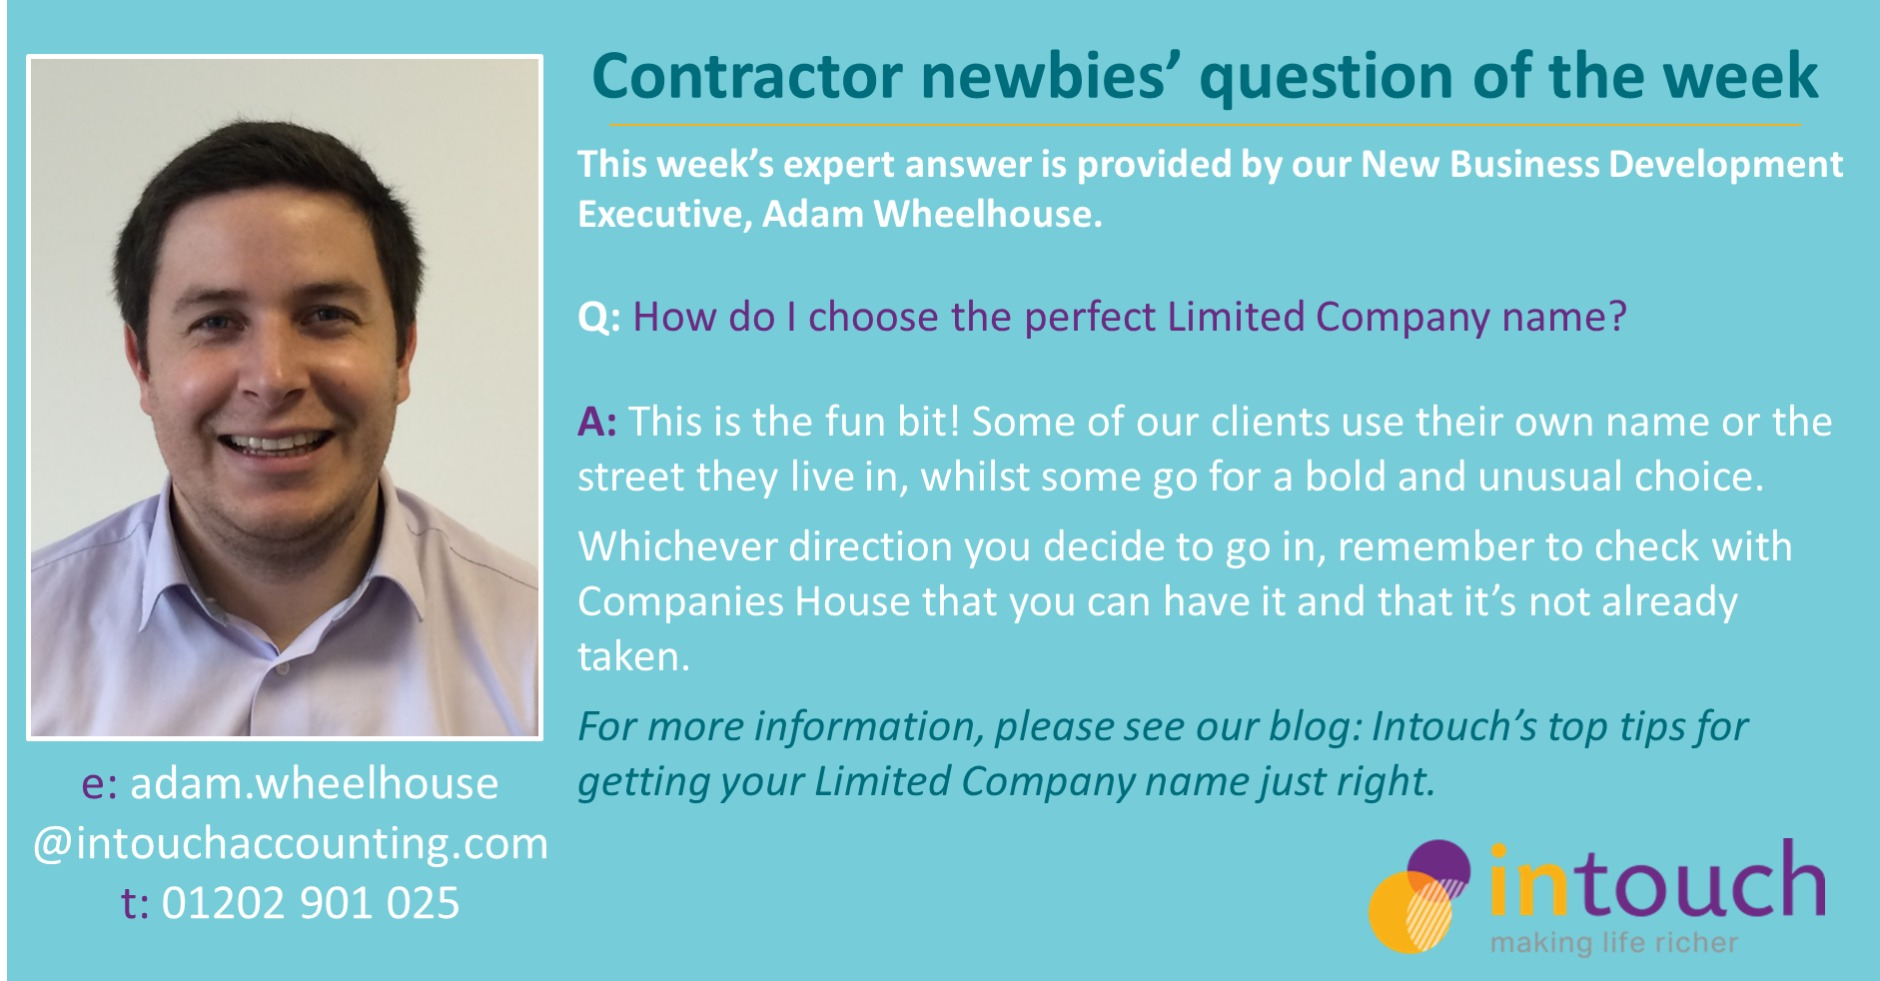 Adam - How do I choose the perfect Limited Company name